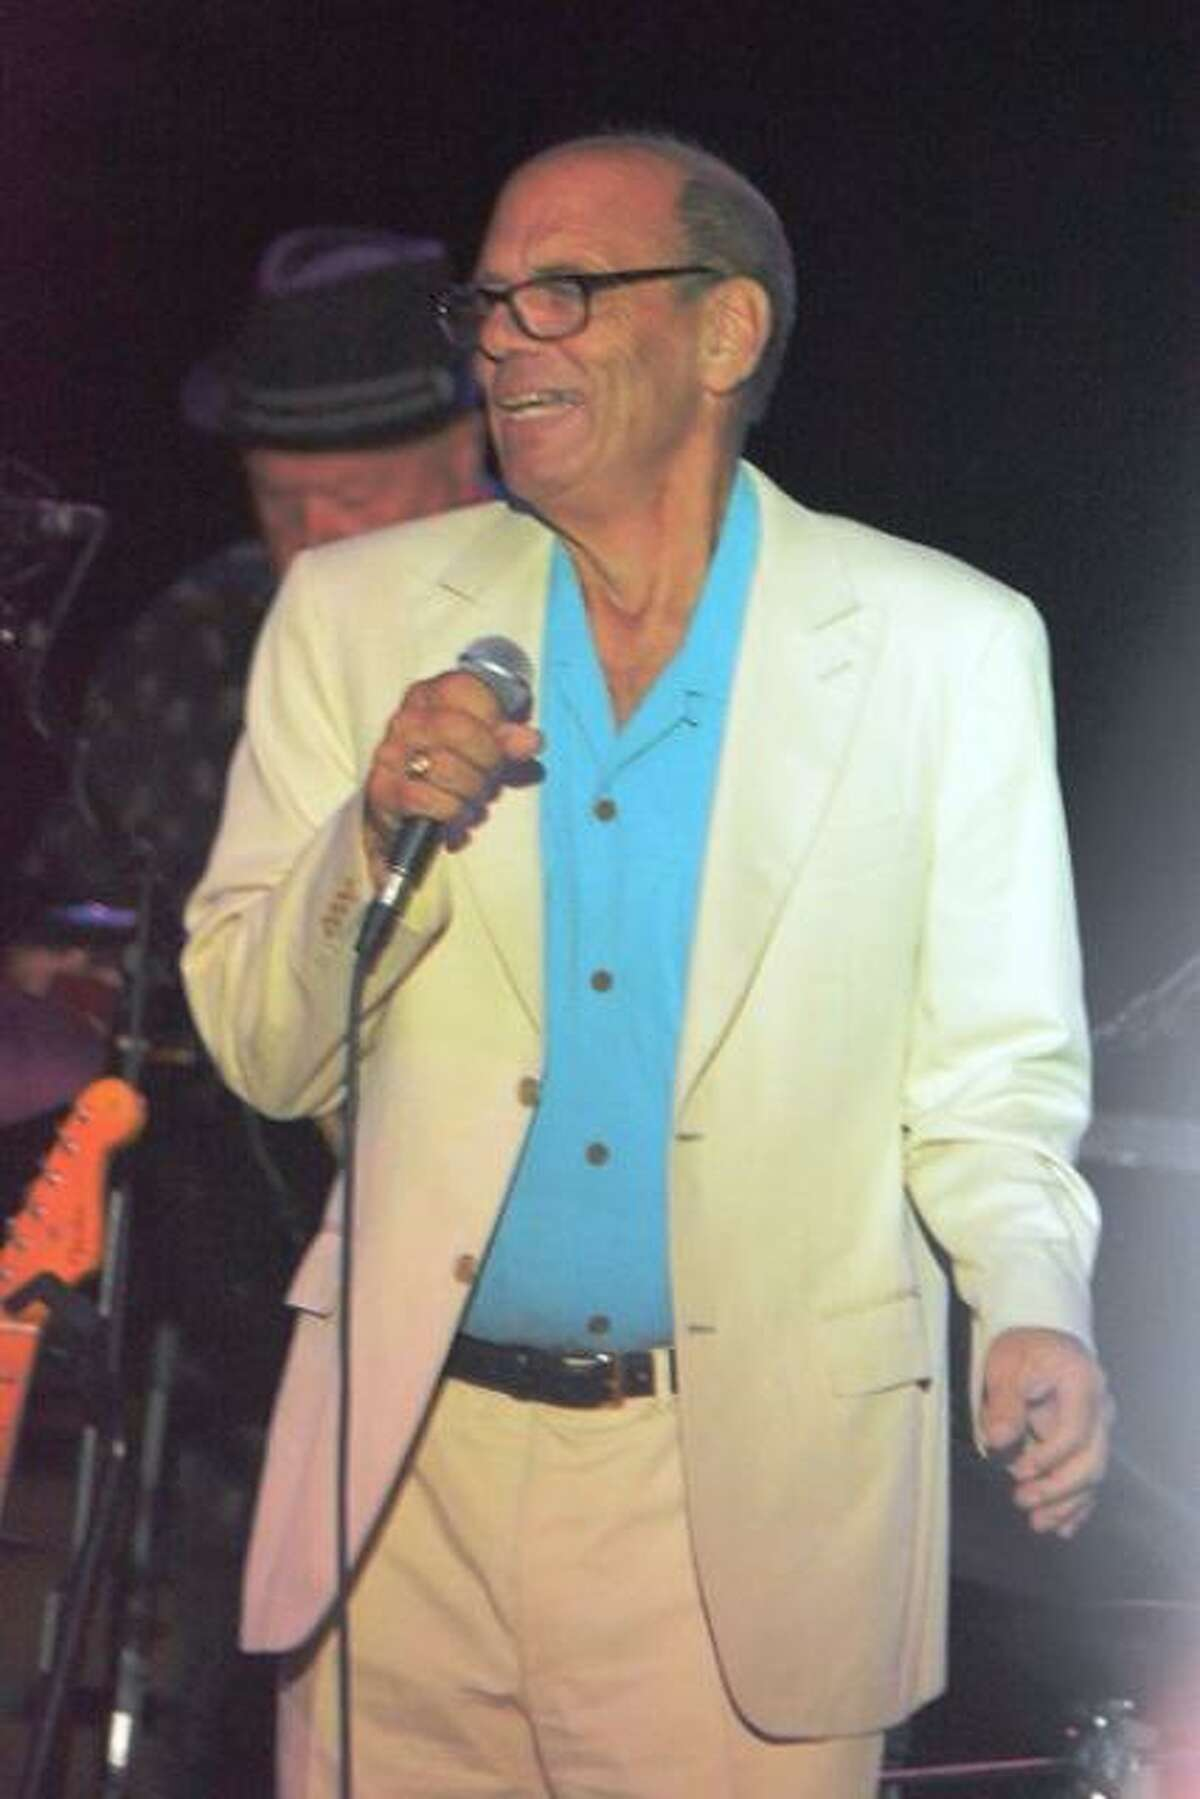 David Foster will join other performers Saturday to celebrate the 50th anniversary of the Shaboo Inn.